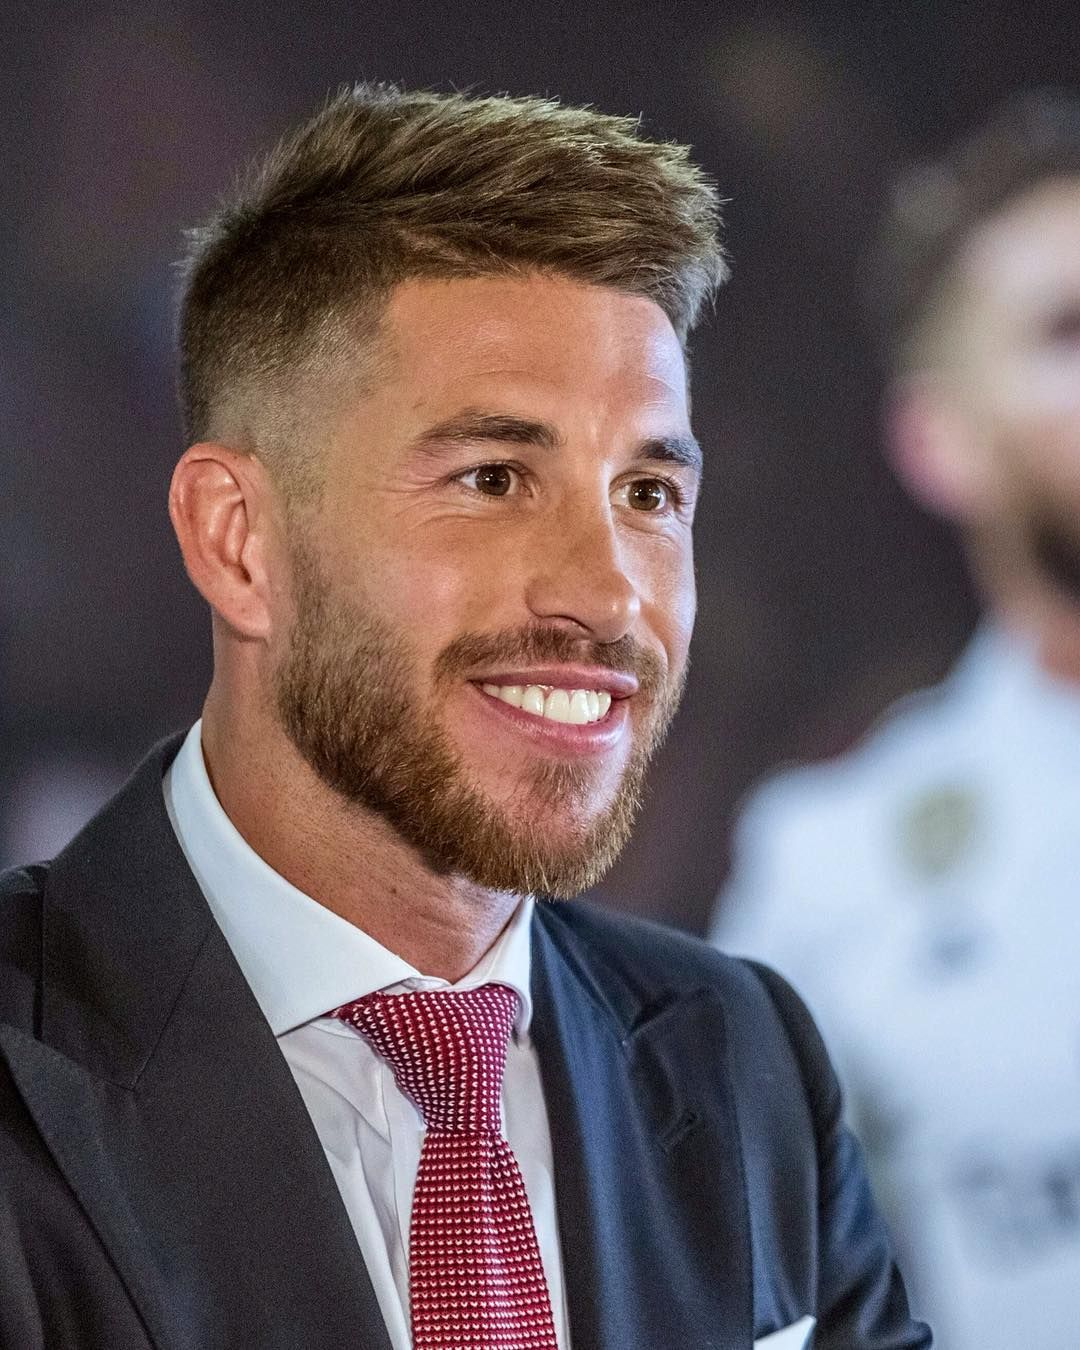 Soccer Player Hairstyles For Men Business Hairstyles Cool Hairstyles For Men Ramos Haircut